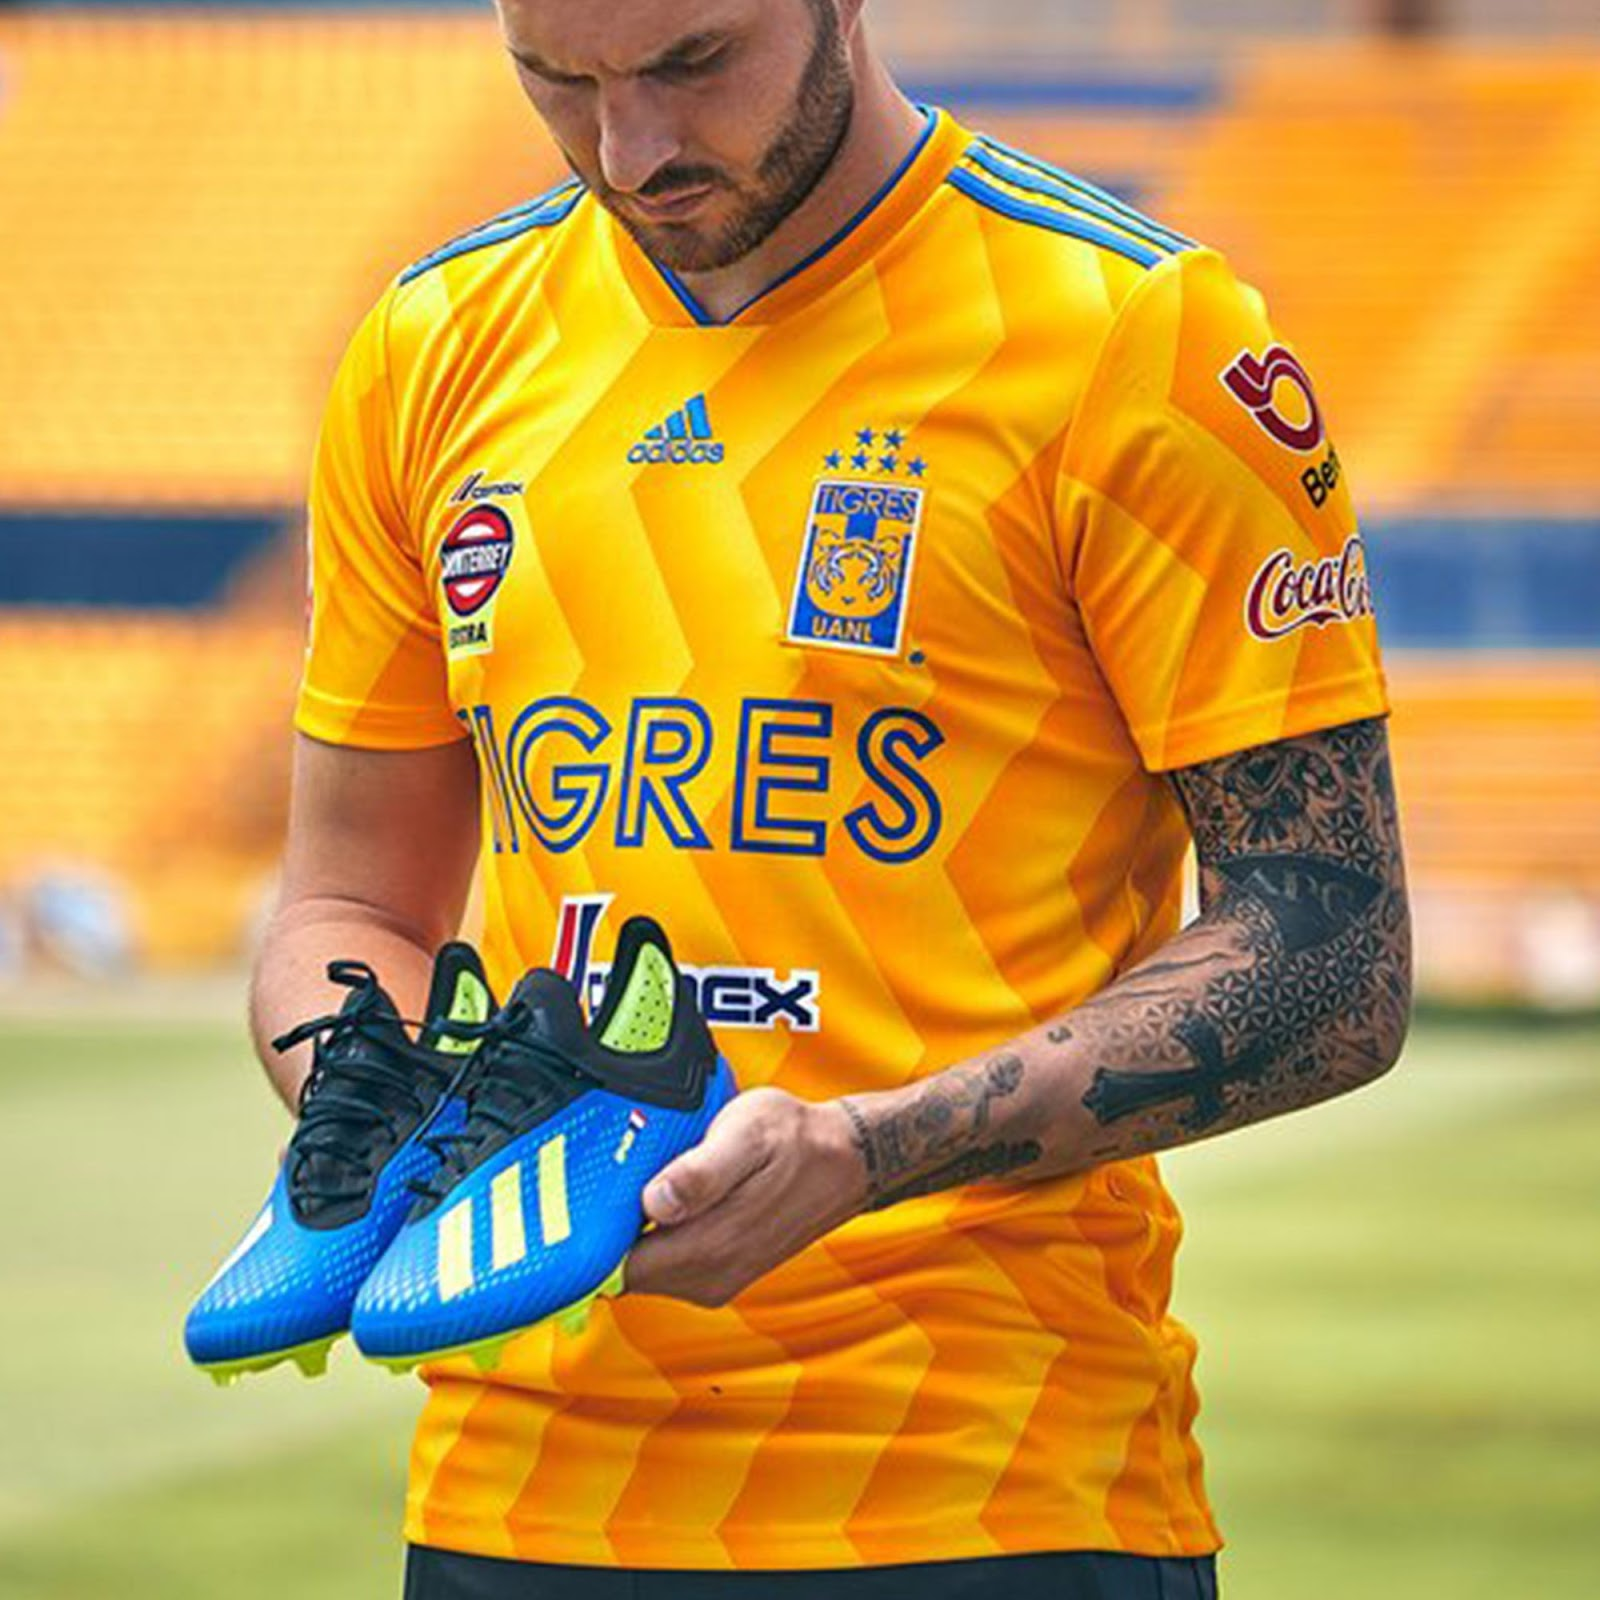 White Shorts ! Adidas Tigres 18-19 Home   Away Kits Released ... 455469878